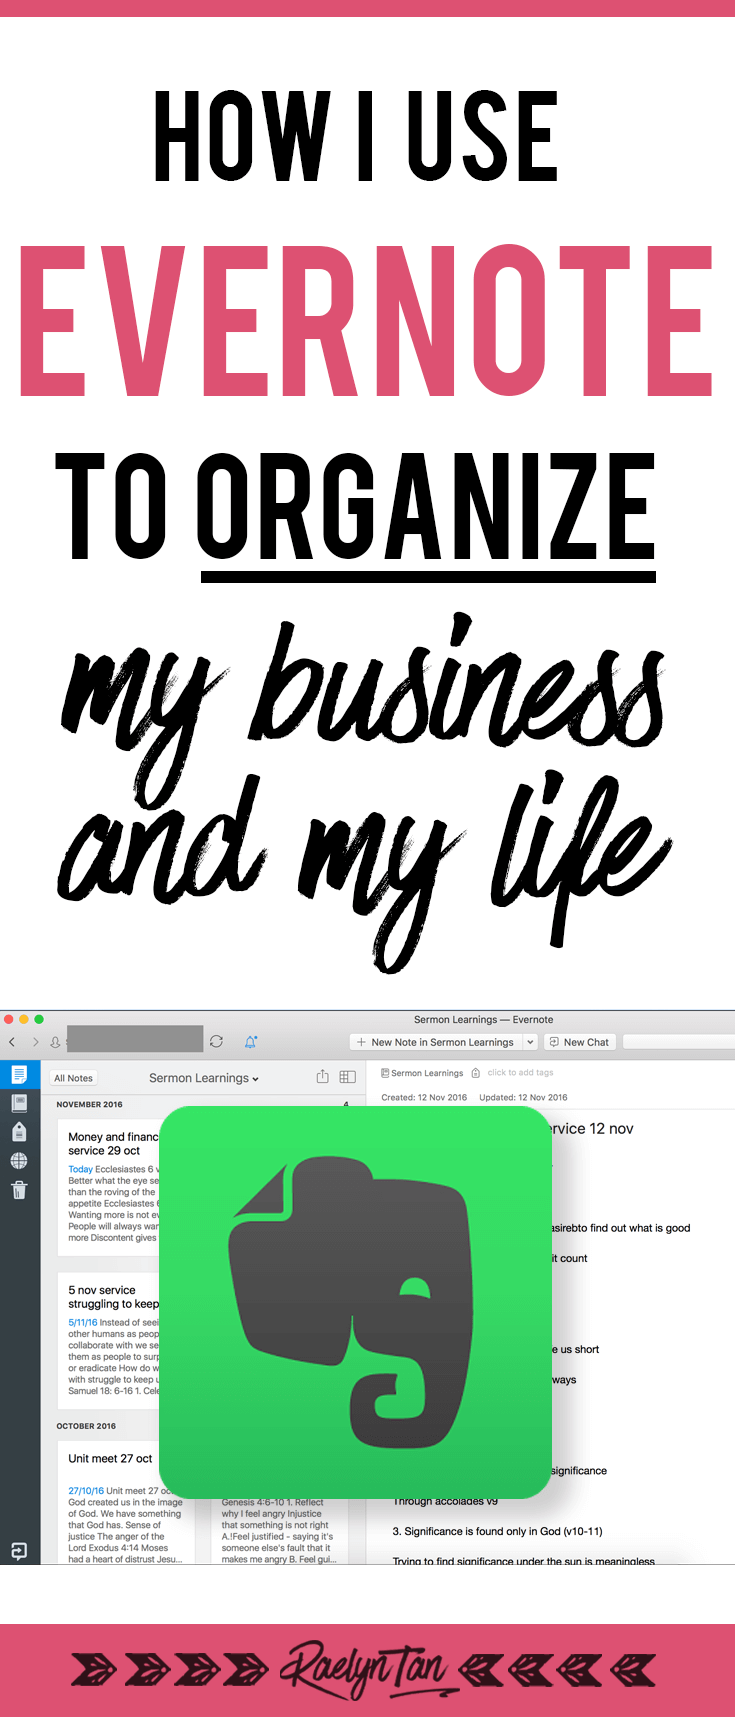 How to use Evernote for organization: As an entrepreneur, here are tips on how I use Evernote to keep my blog, business and life organized.